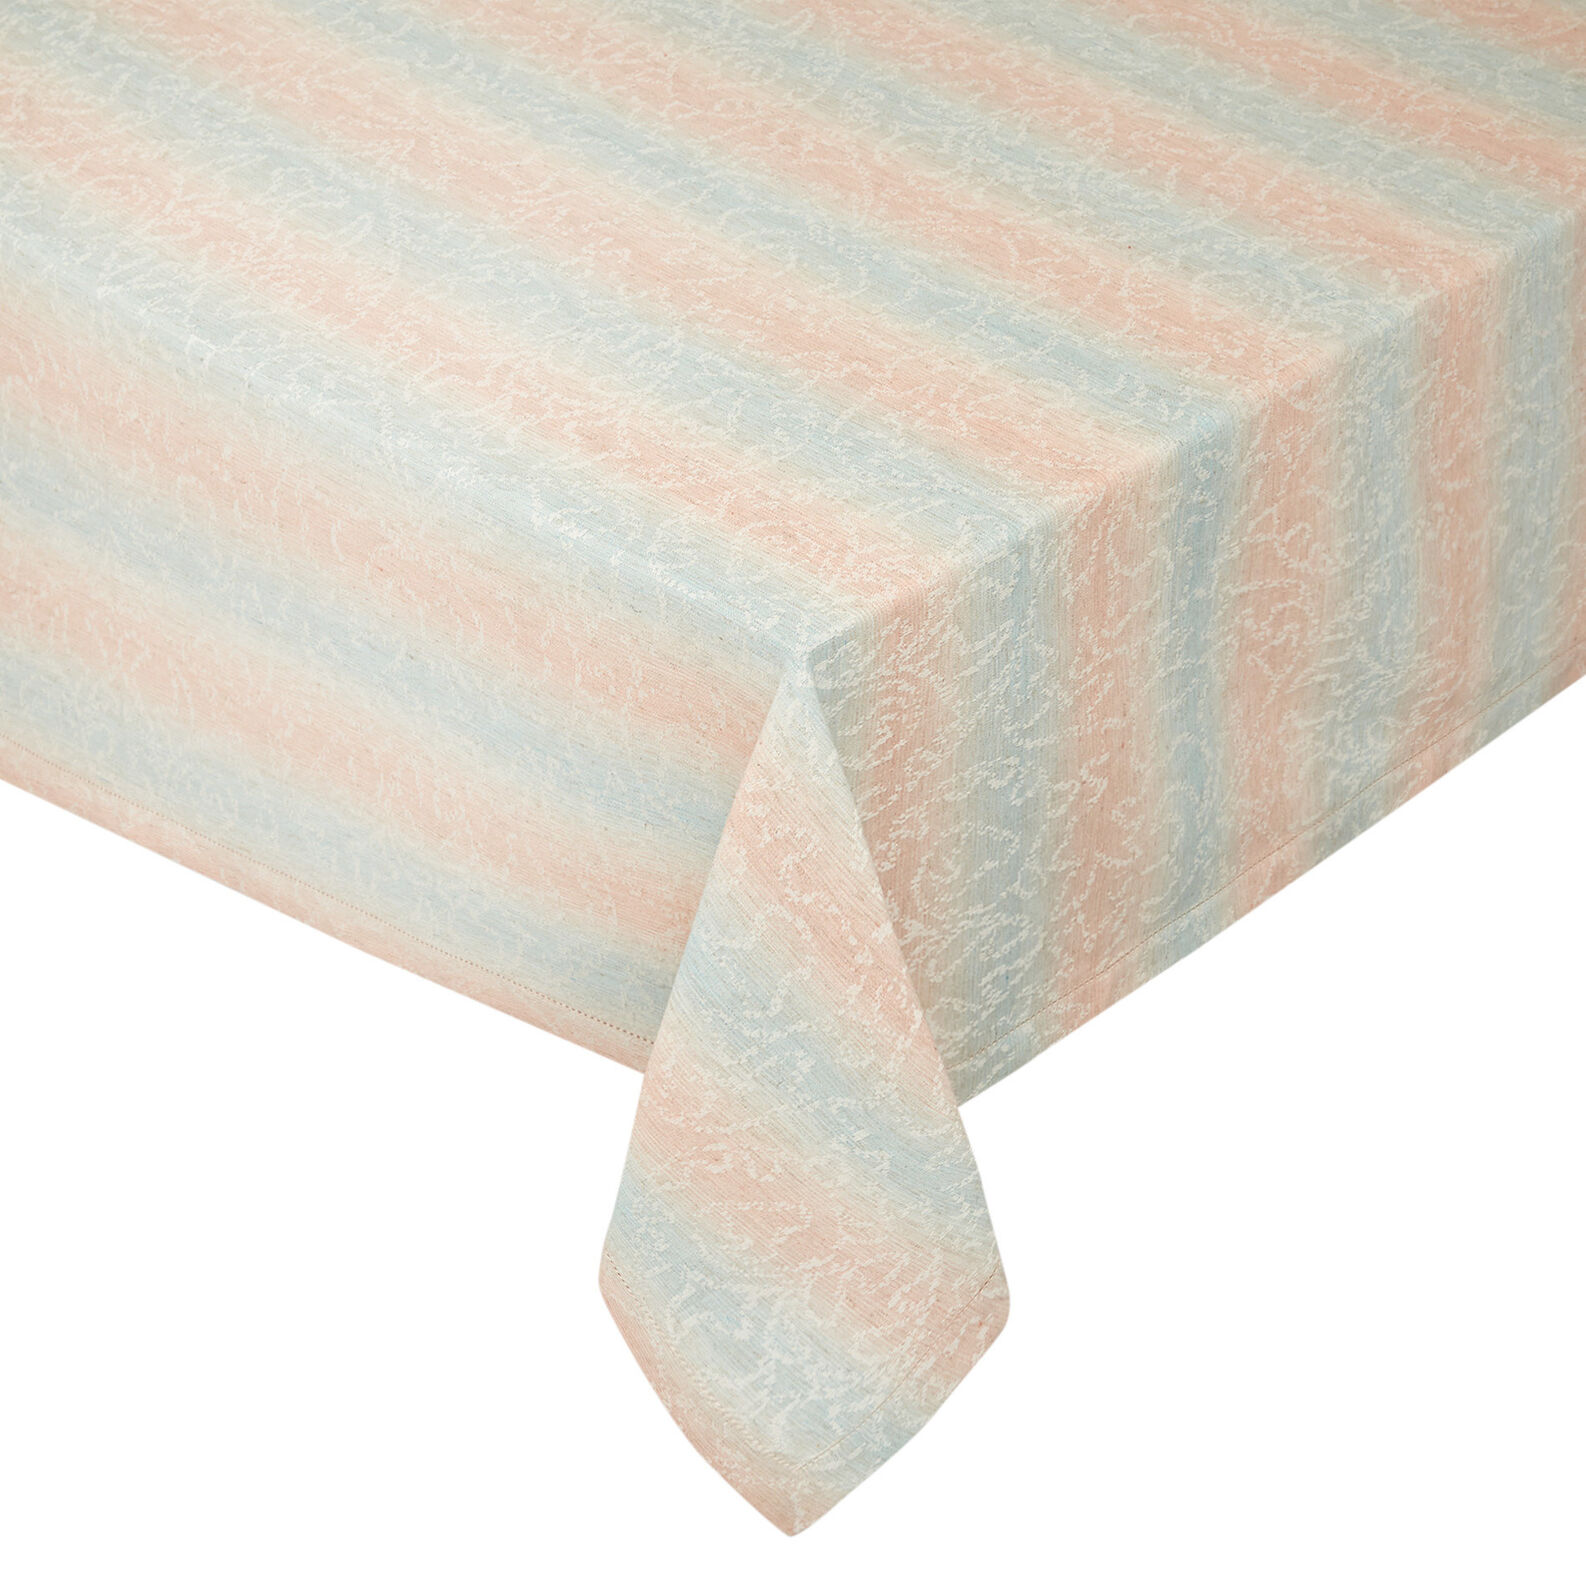 Stonewashed cotton blend table cloth with striped motif.